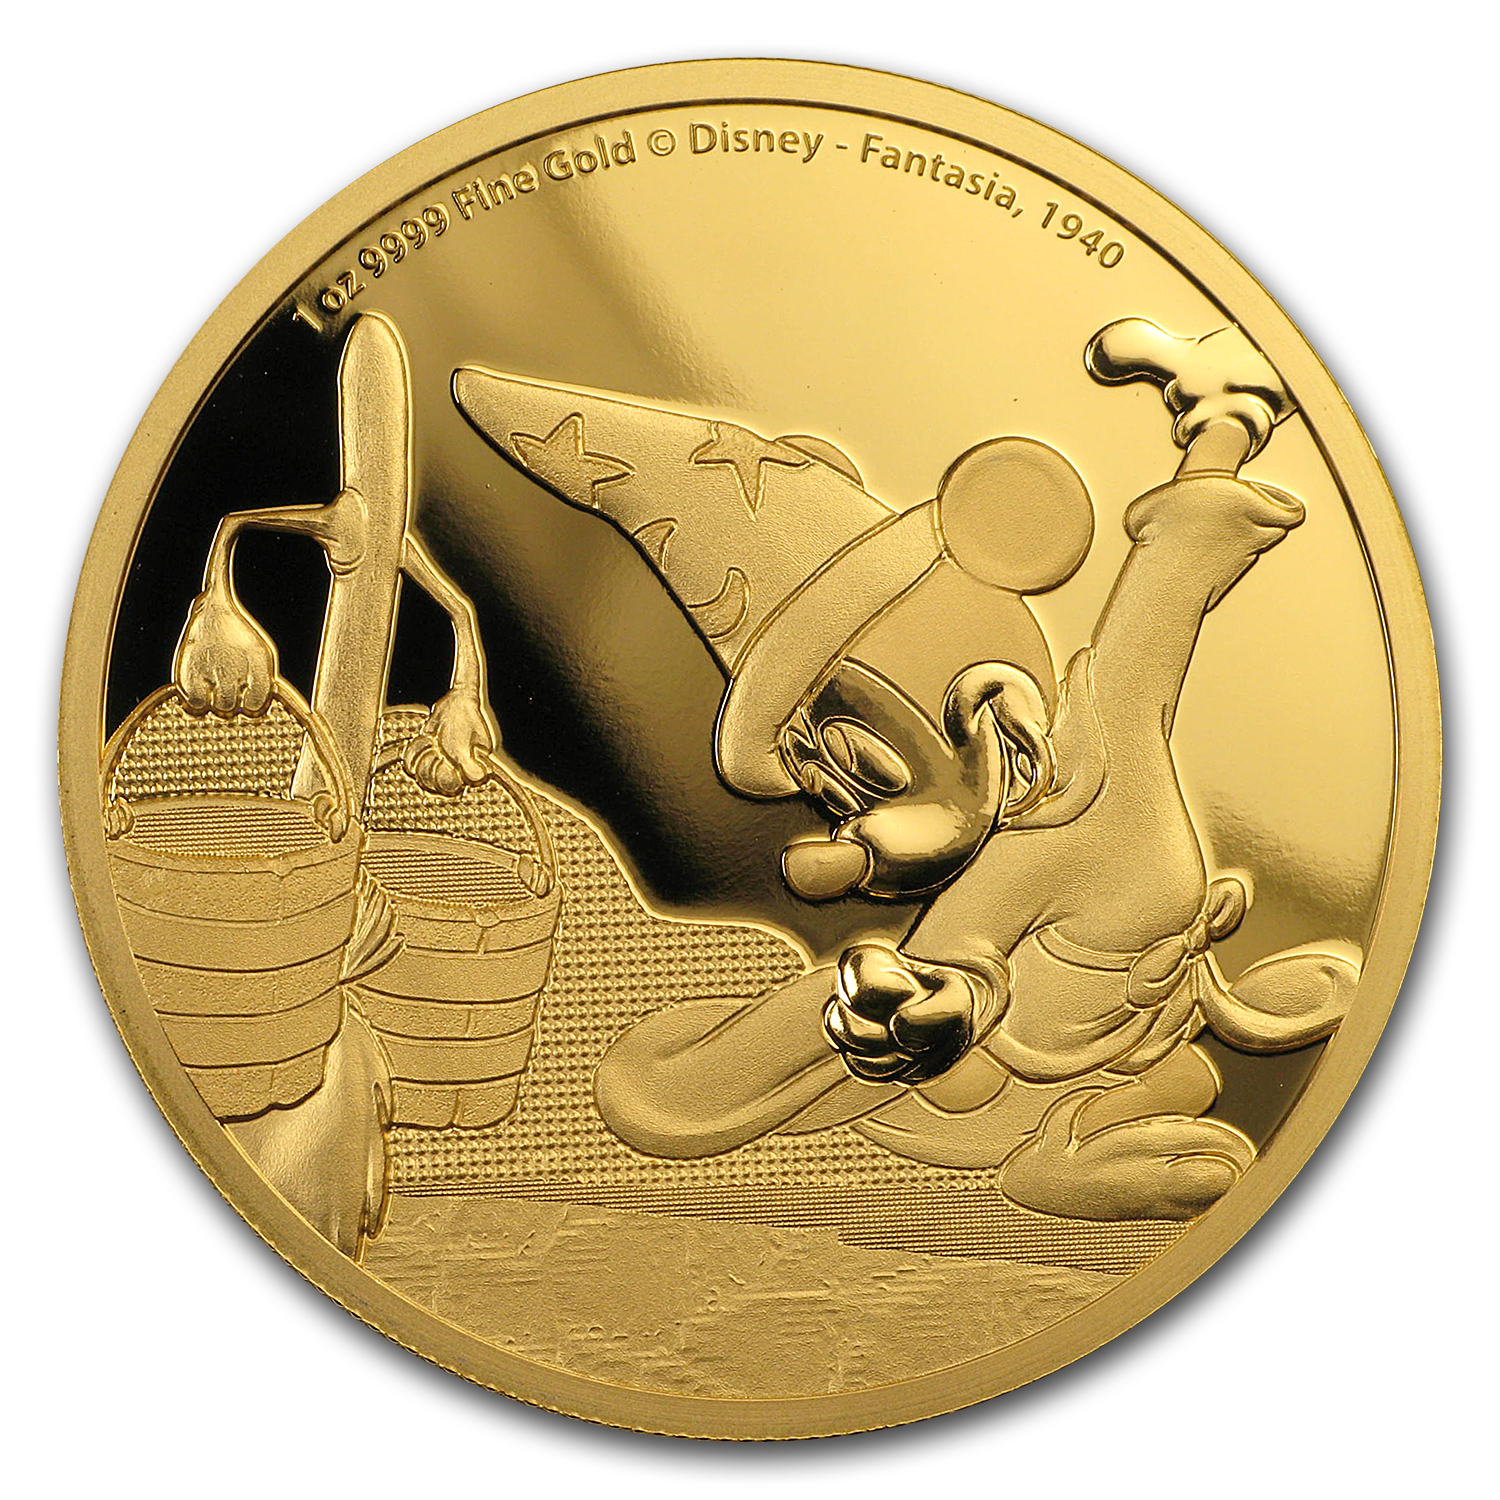 2017 1 oz Gold $250 Mickey Through the Ages: Fantasia